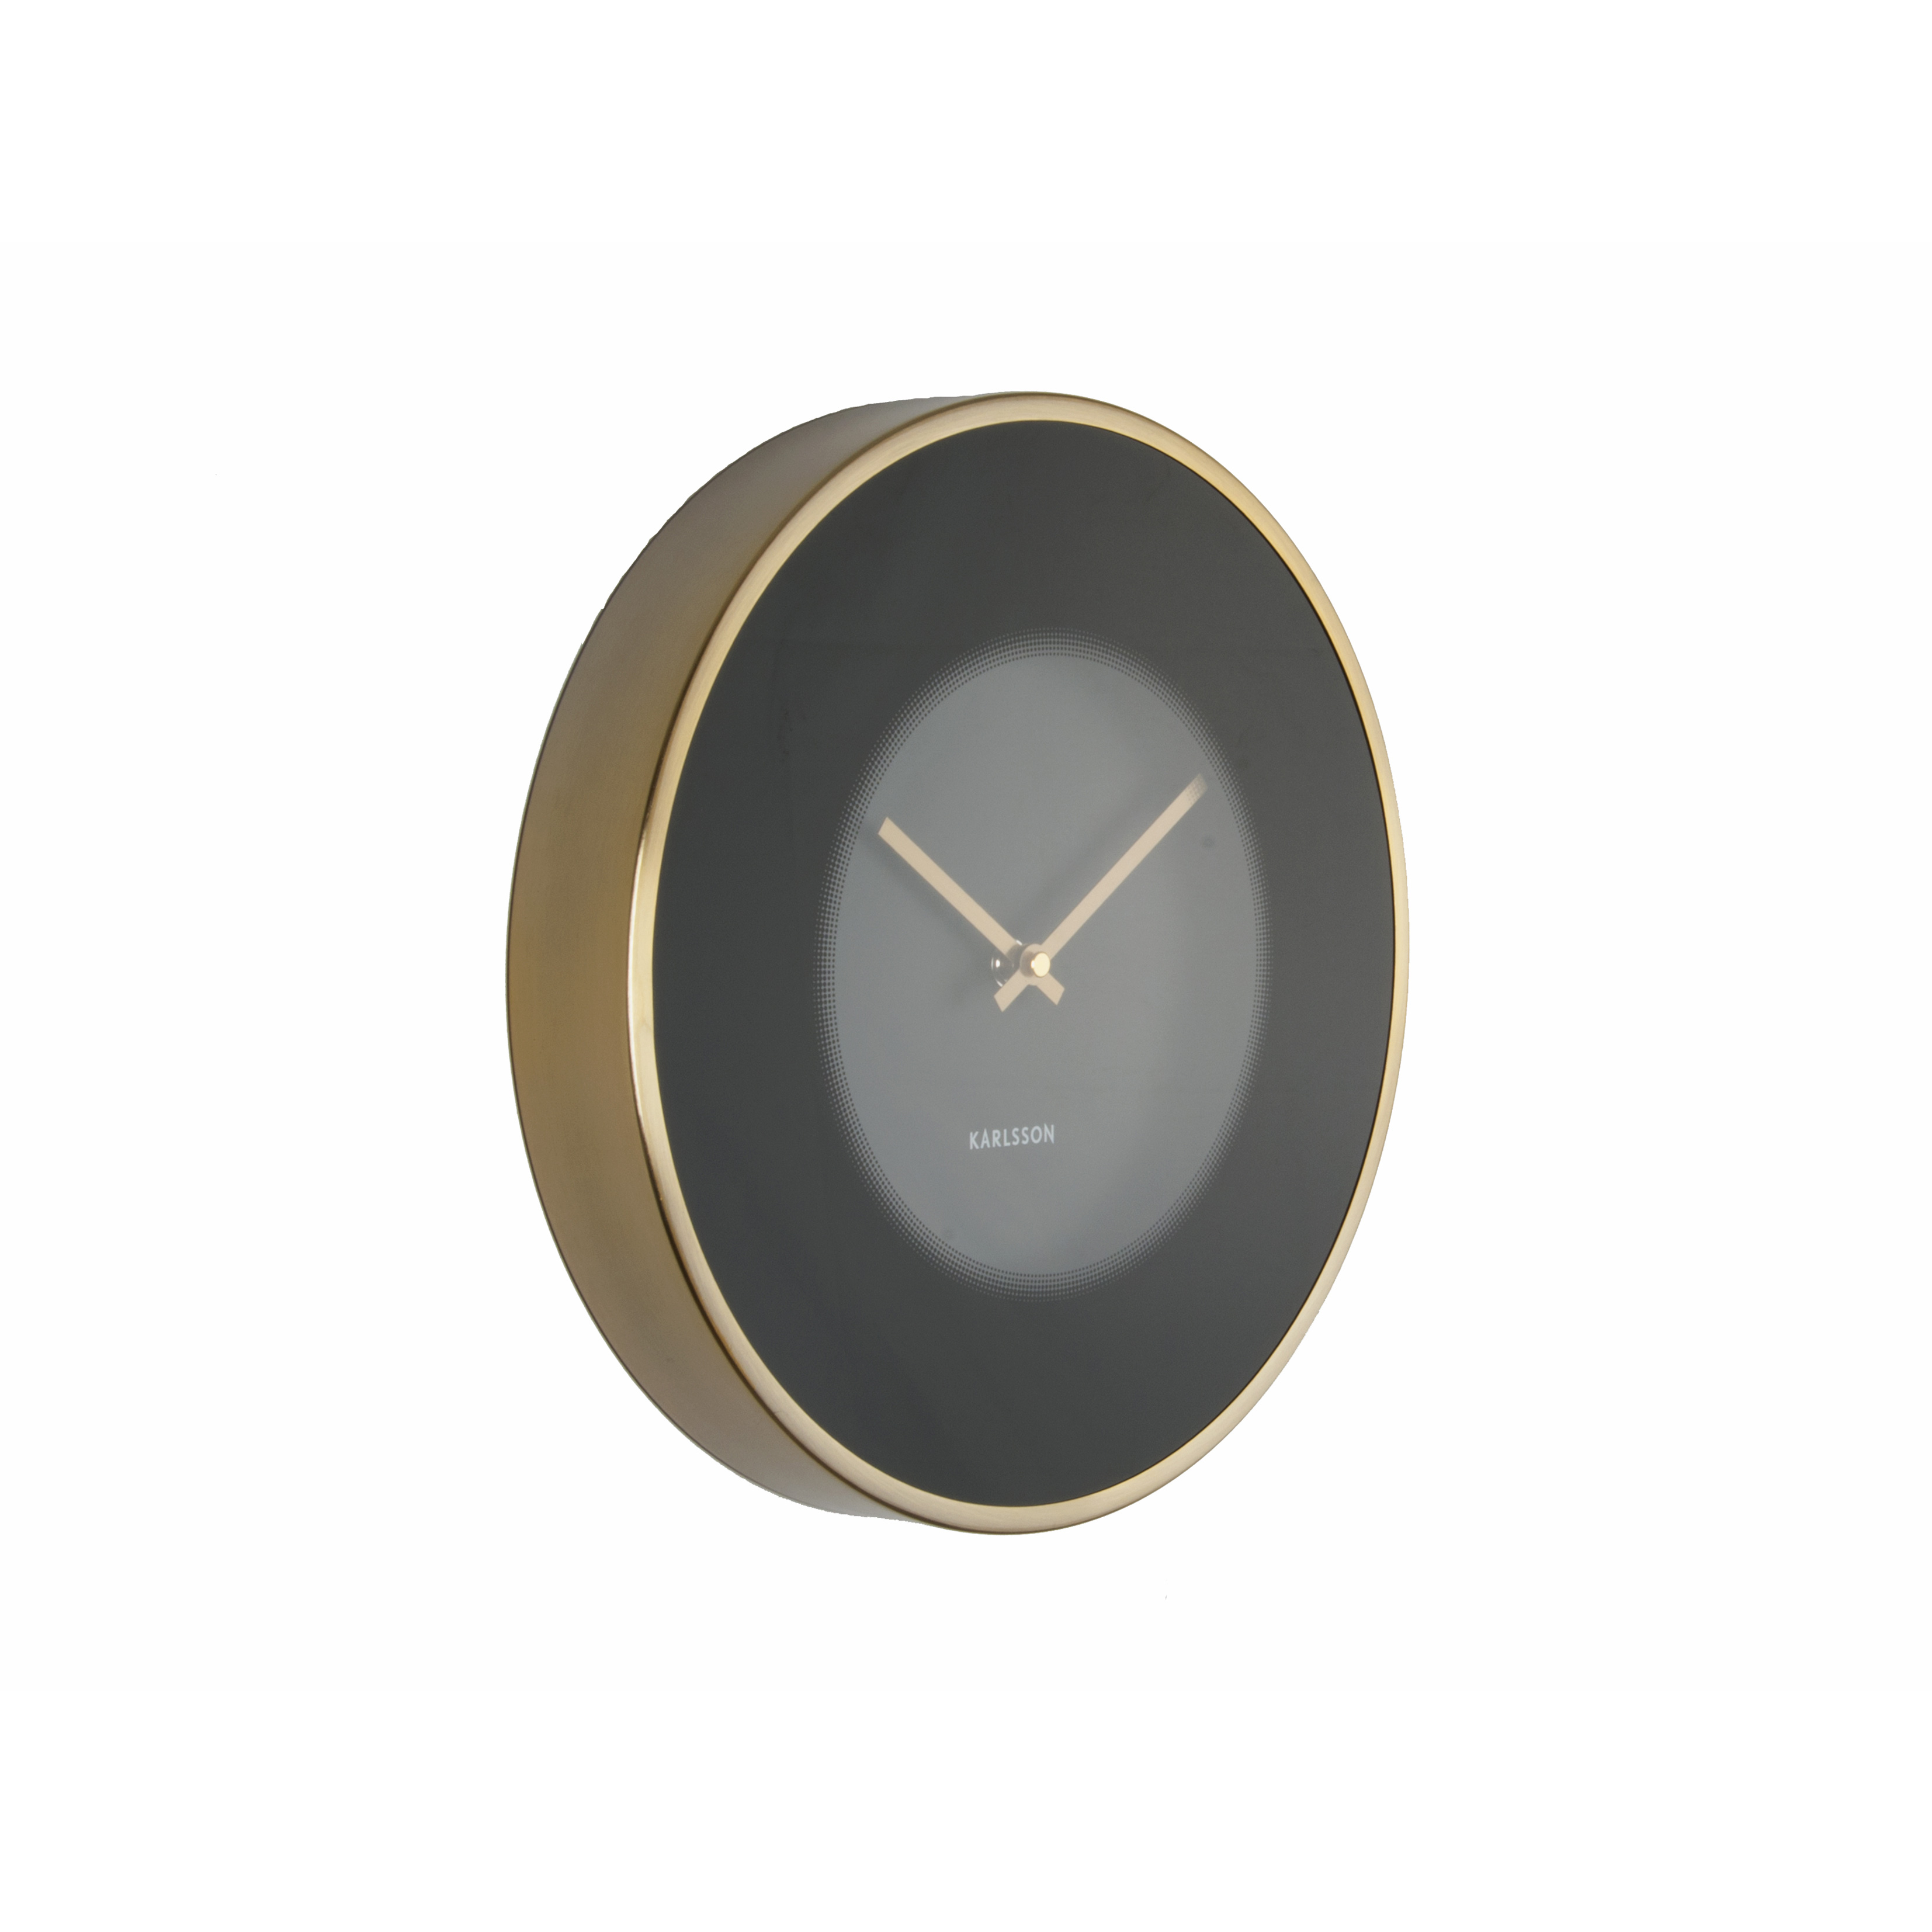 Modern Wall Clock In Black And Gold